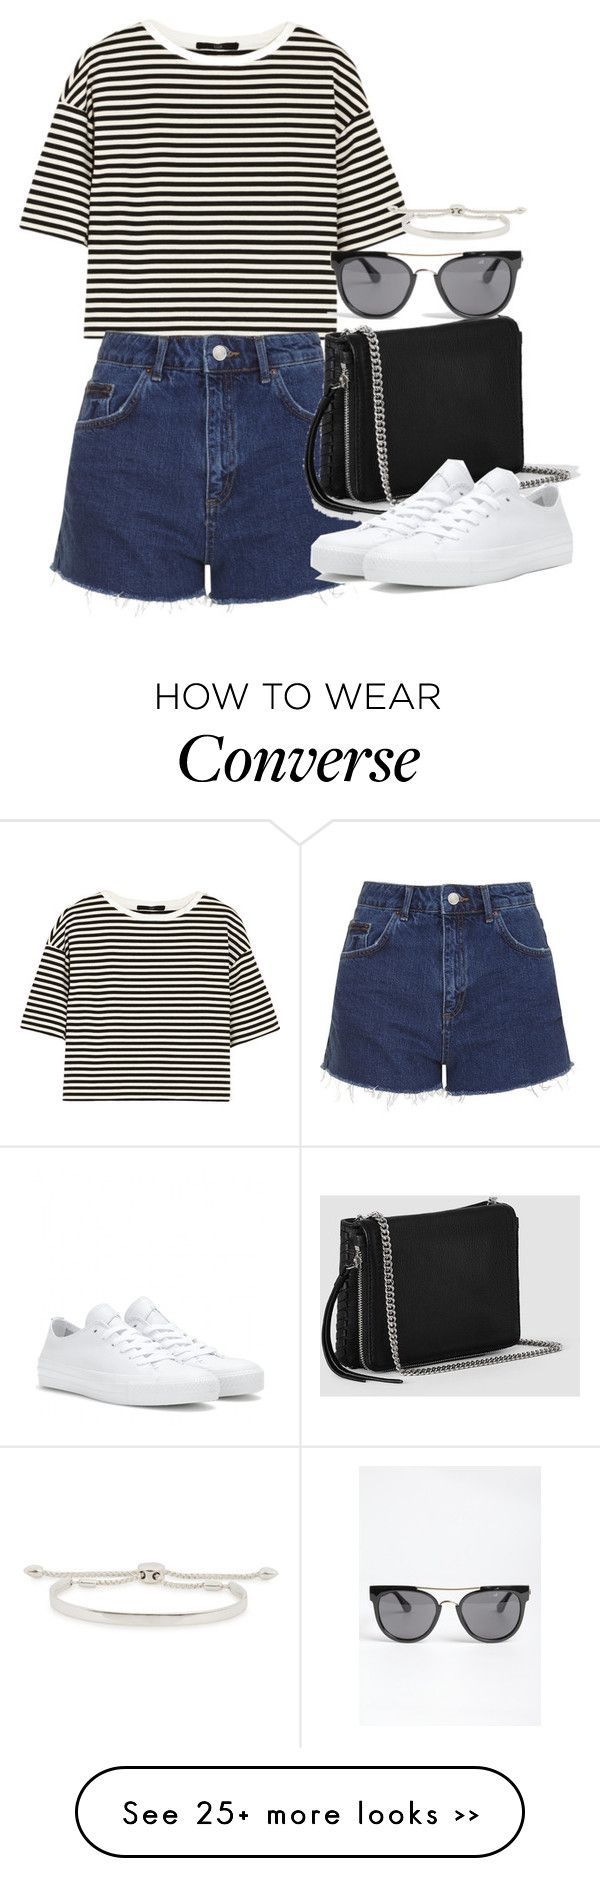 Converse and Quay  shoes eleanorsclosettt by      Untitled            TIBI   AllSaints  discount jordan Polyvore Topshop  featuring on Monica Vinader price